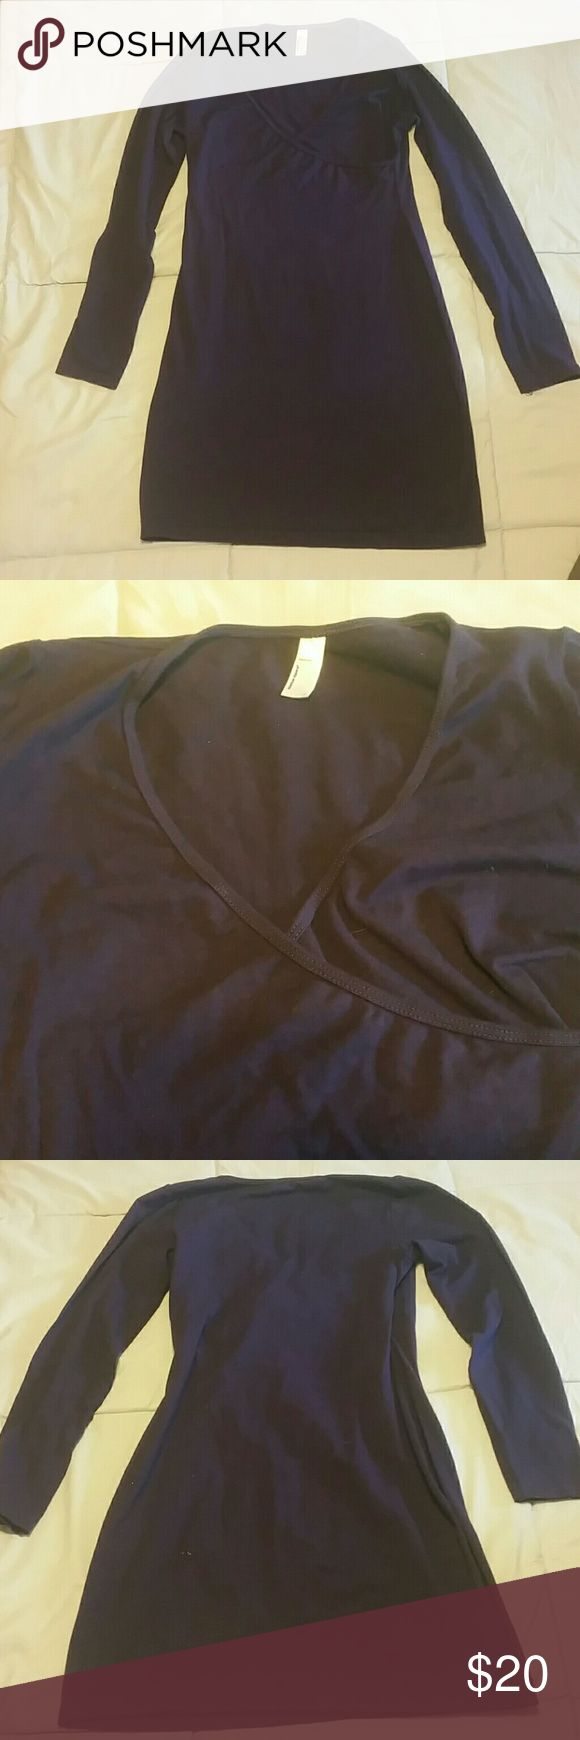 American Apparel Wrap Dress L in Eggplant AA Wrap Dress (faux wrap meaning it covers your chest to create wrap appearance)  in Eggplant. Never Worn. Size Large. Slight deodorant mark on left armpit. Not noticeable unless you really look for it. American Apparel Dresses Mini